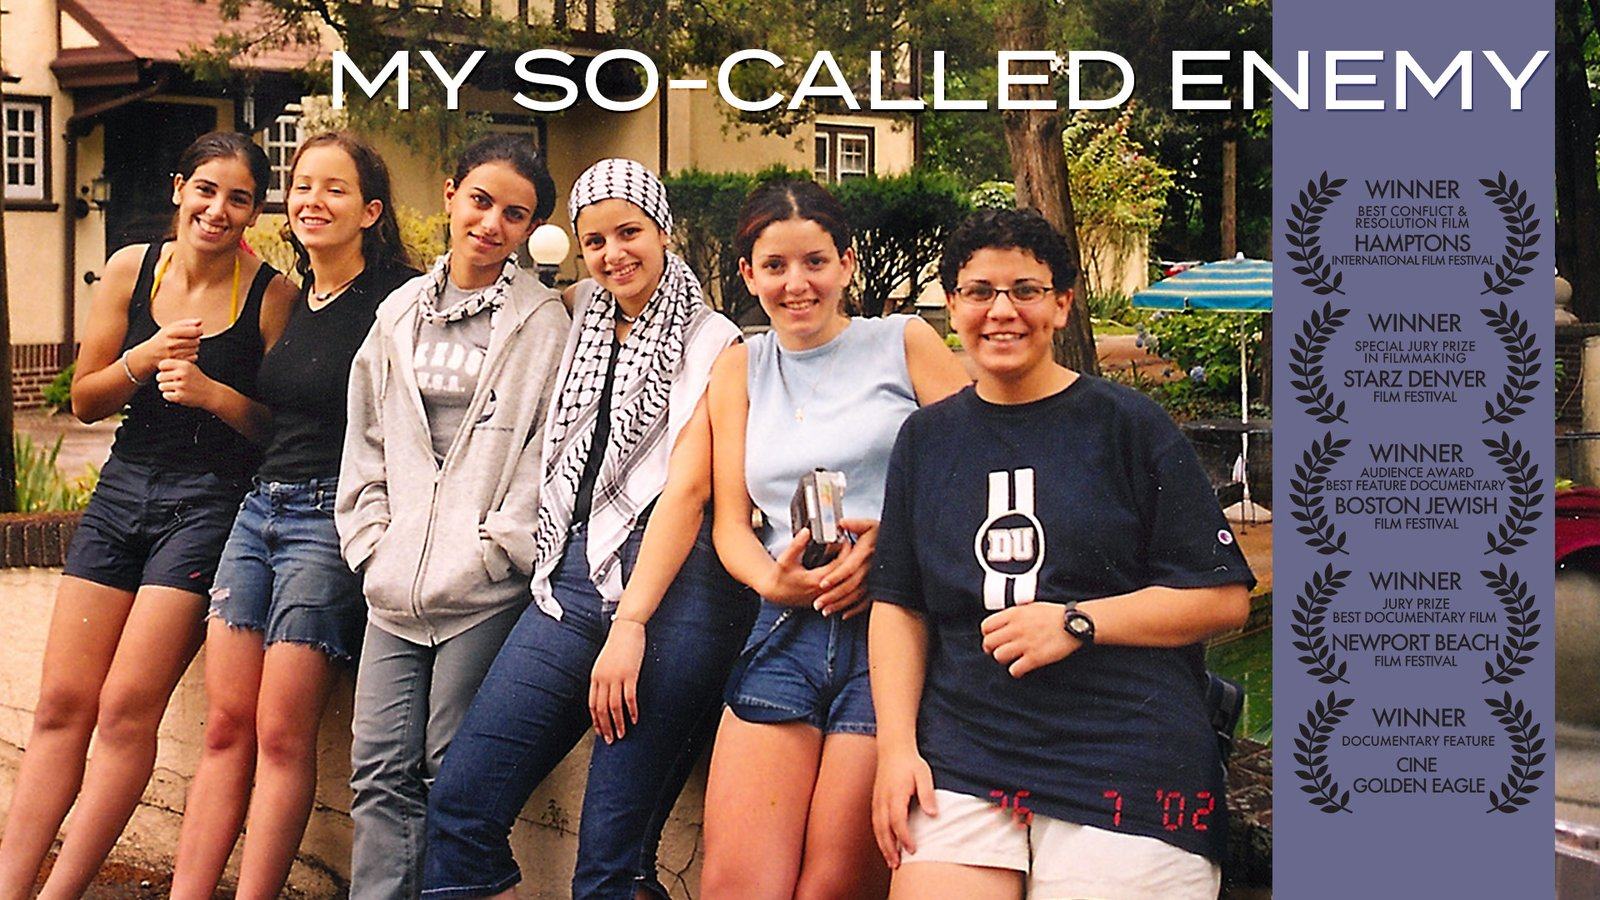 My So-Called Enemy - Celebrating Diversity, Interfaith and Intercultural Understanding